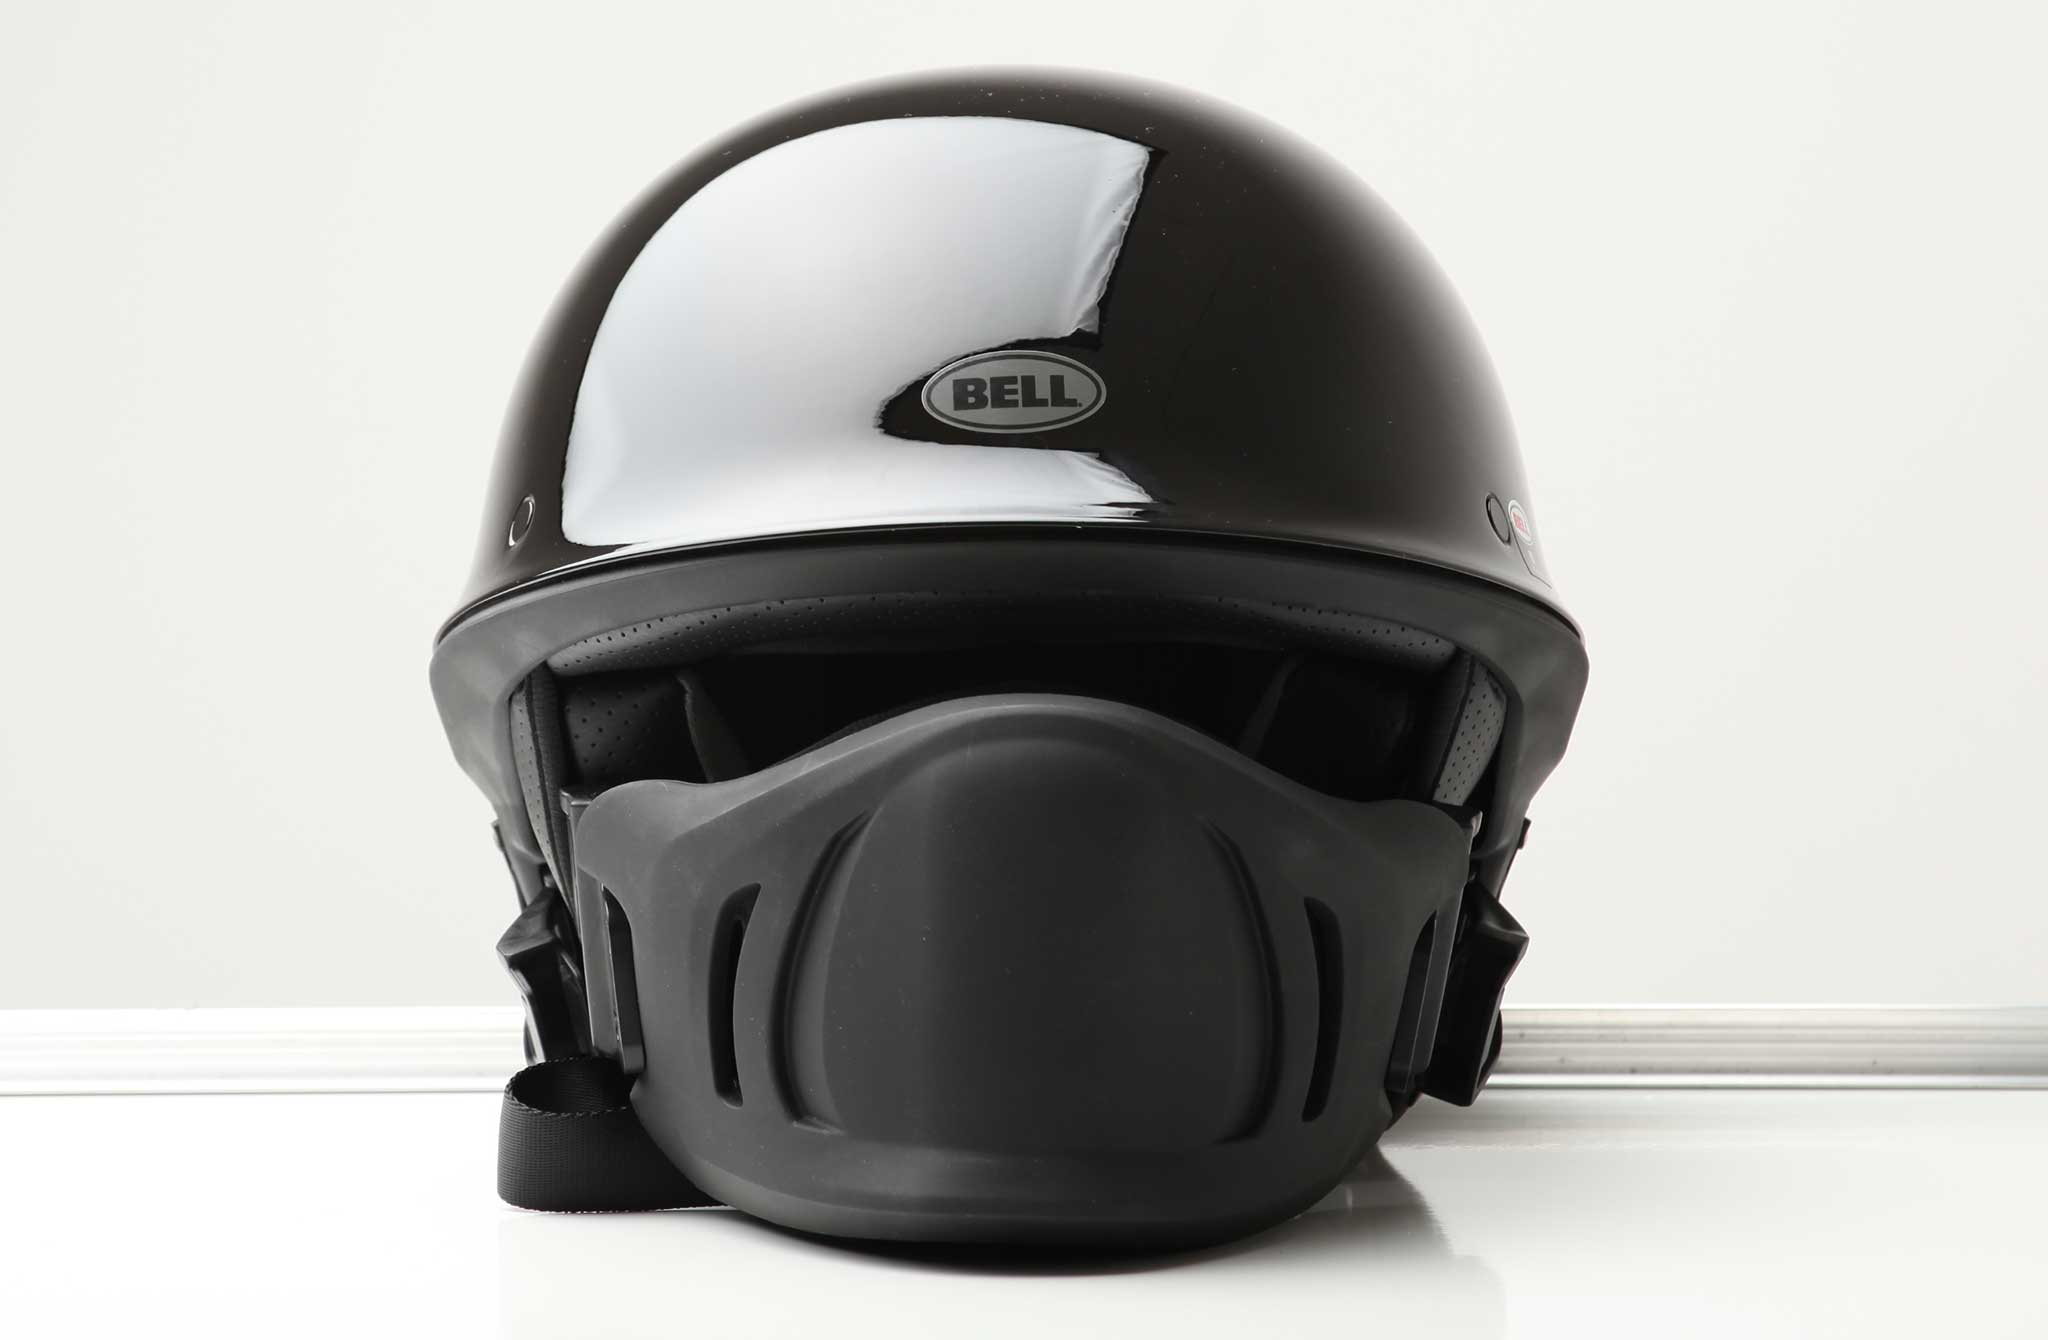 Bell Motorcycle Helmet >> Bell Motorcycle Helmets Protecting You Since 1954